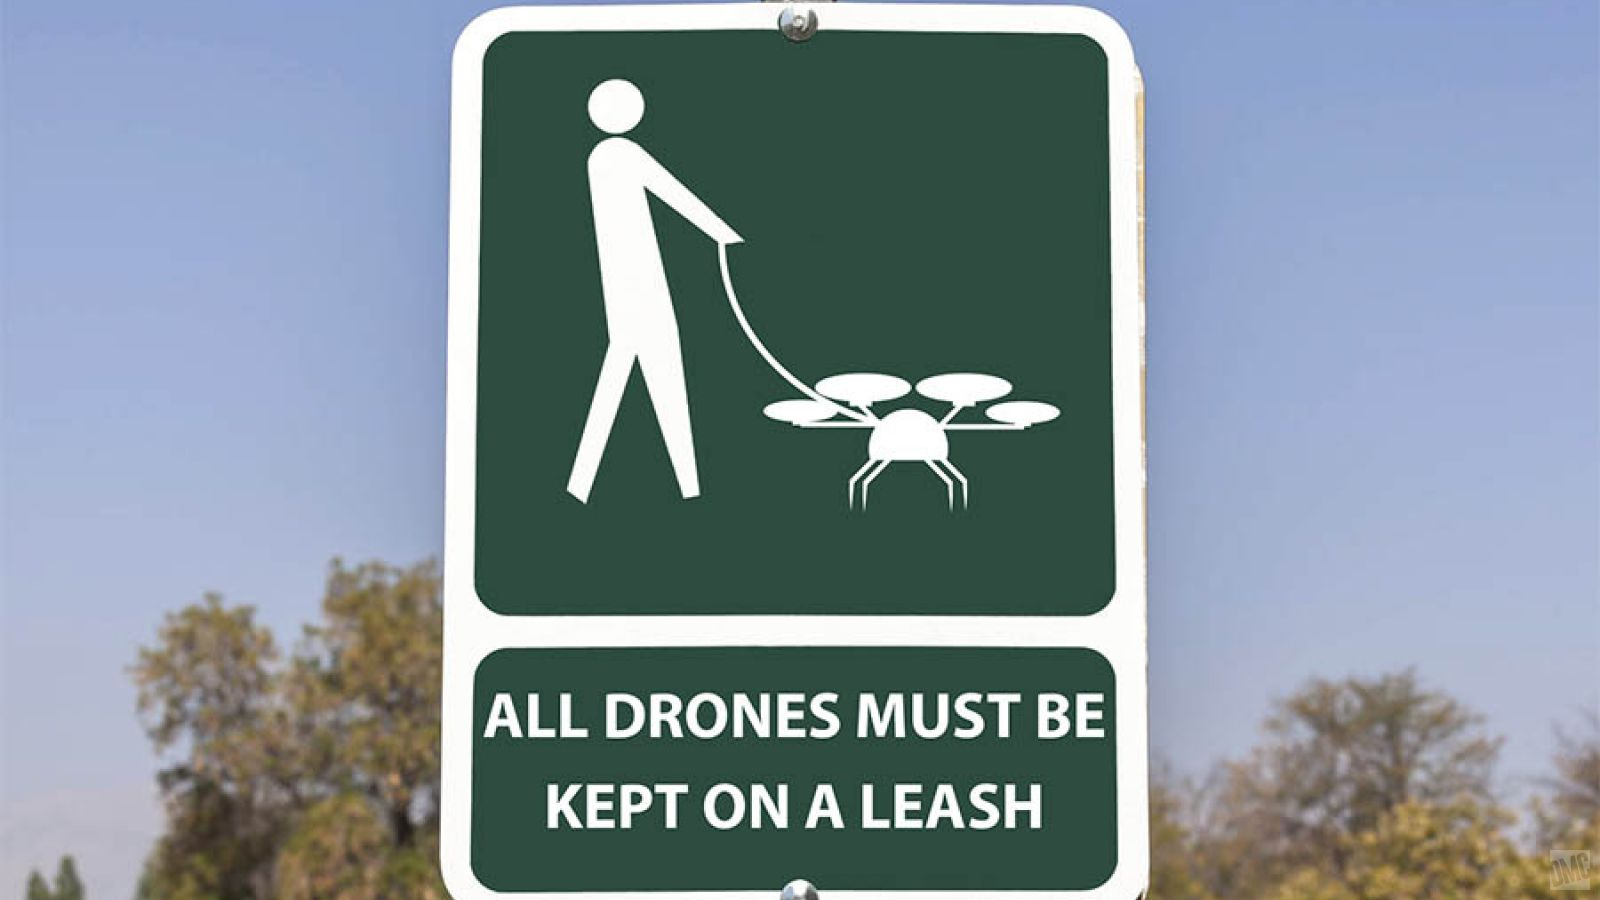 All Drones on a Leash!